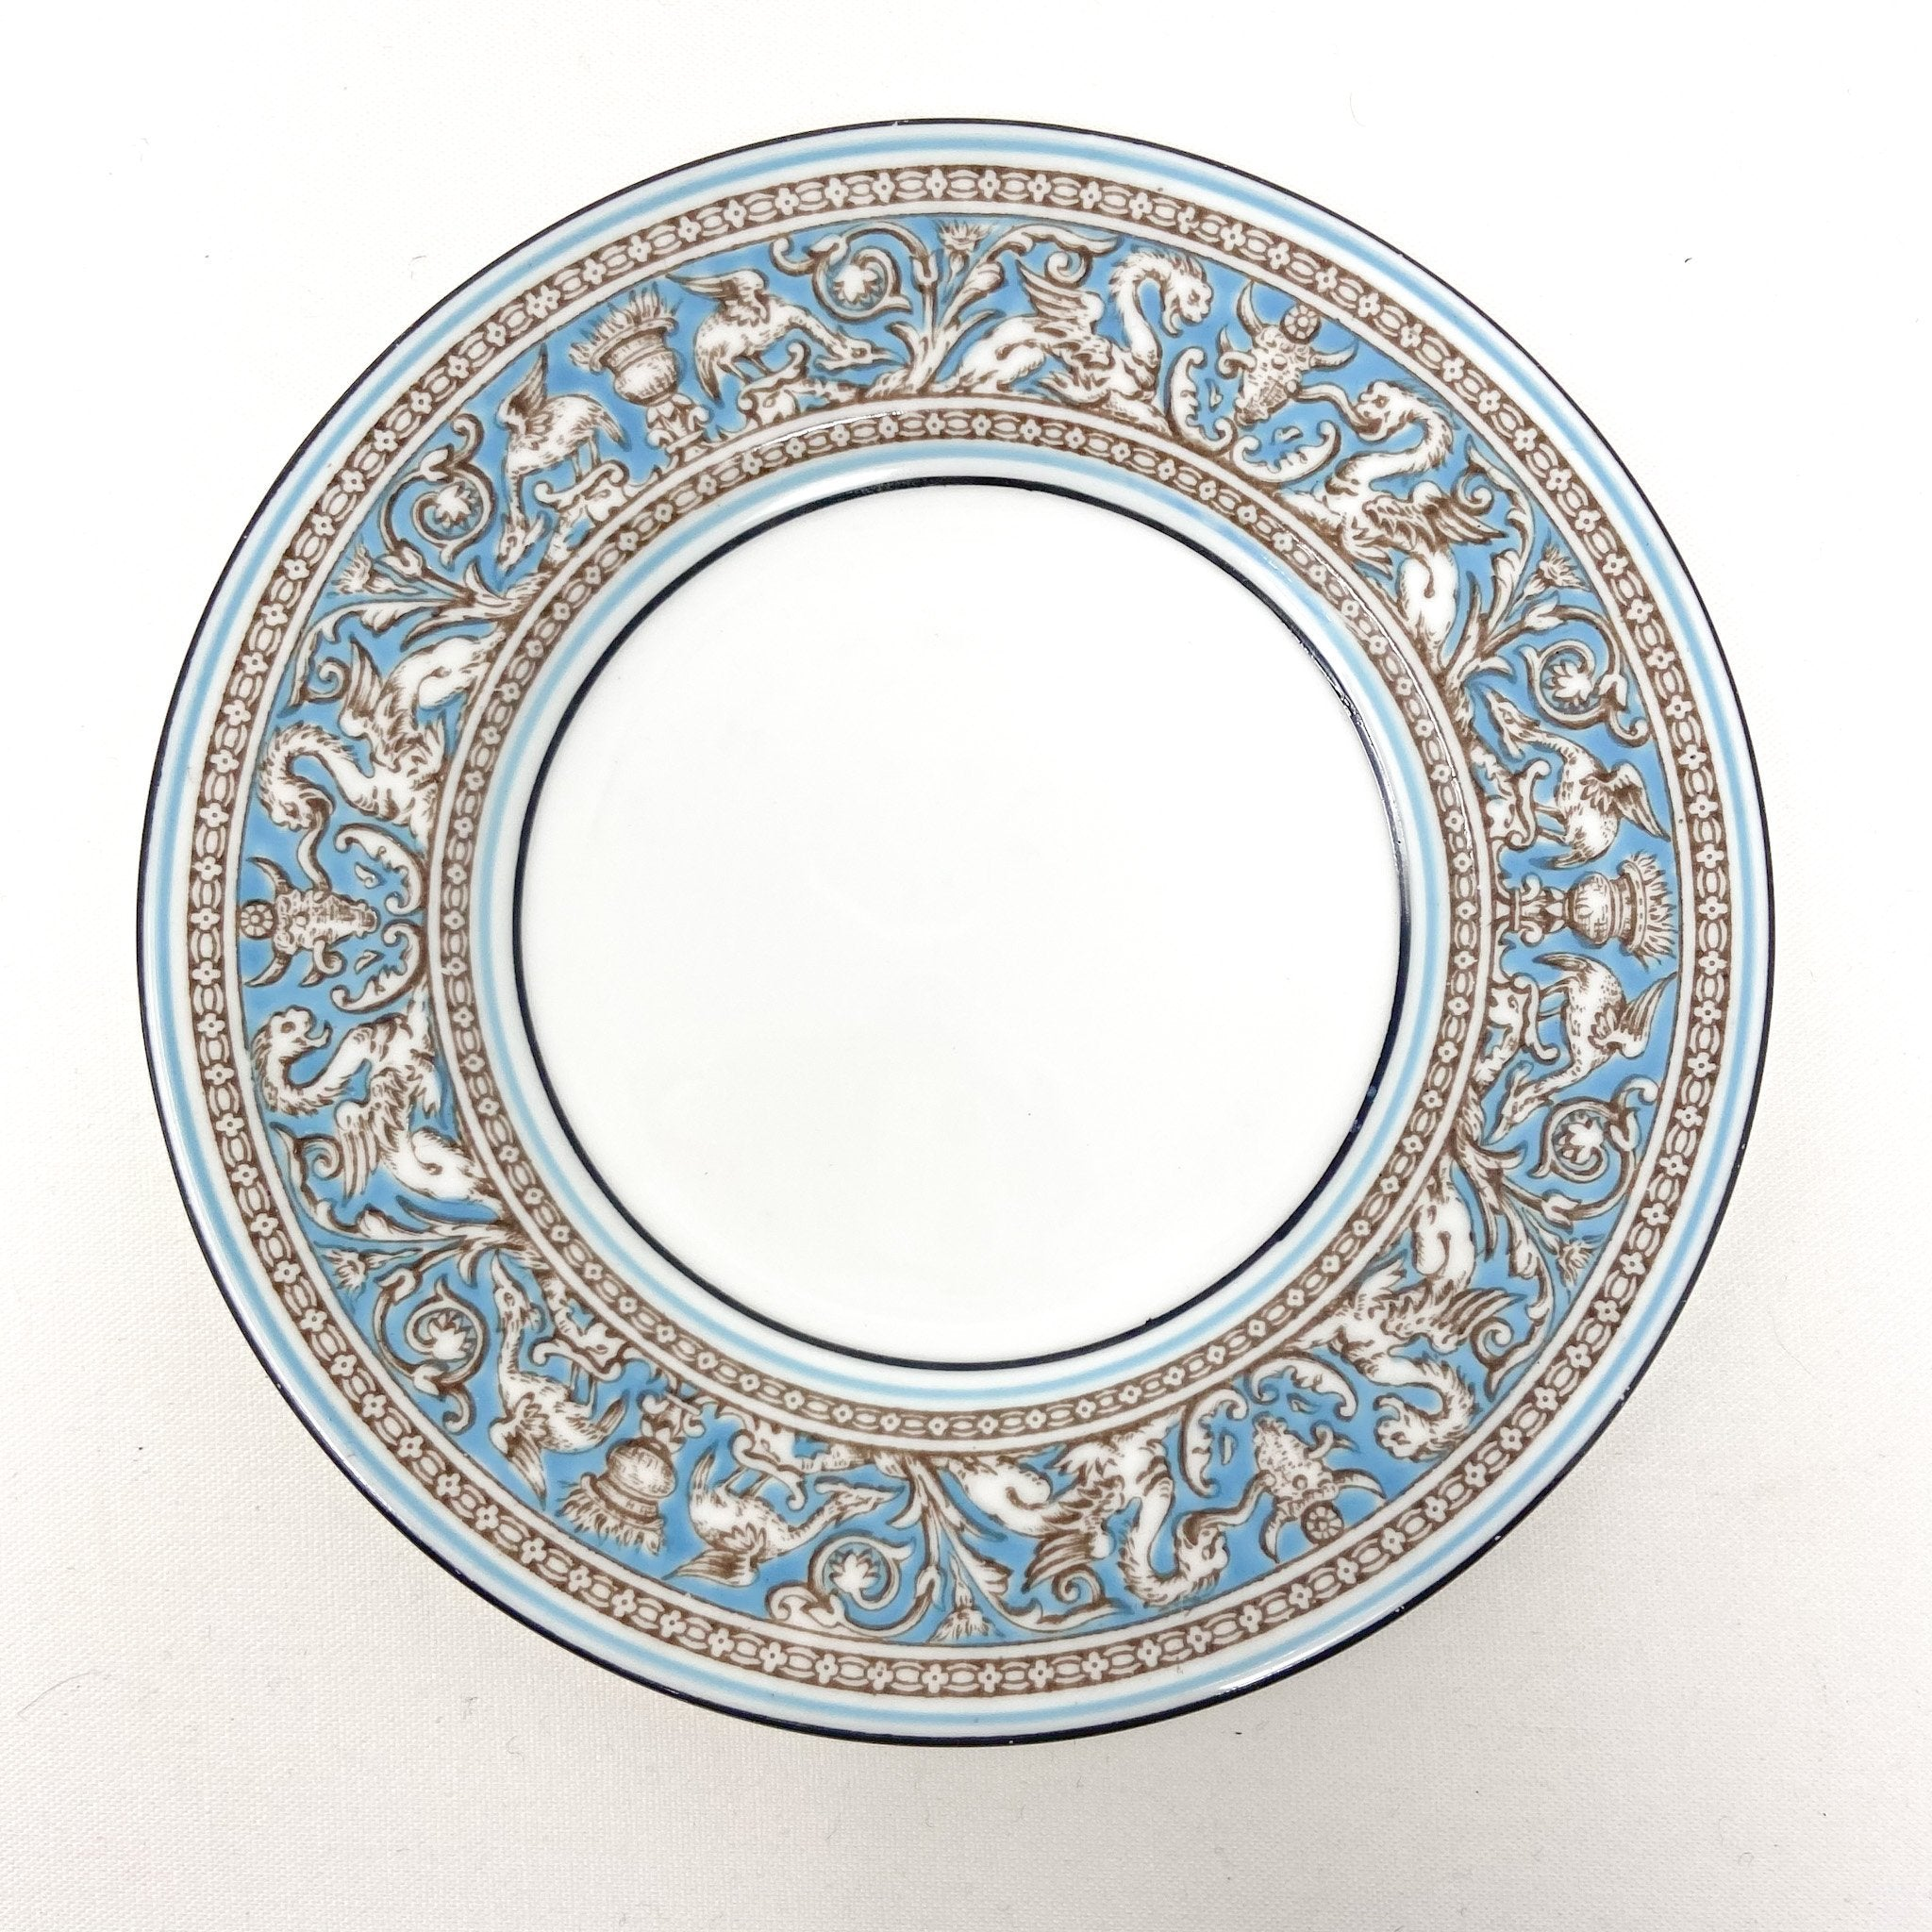 Wedgwood Florentine | Bread & Butter Plate | Wedgwood - The Brooklyn Teacup